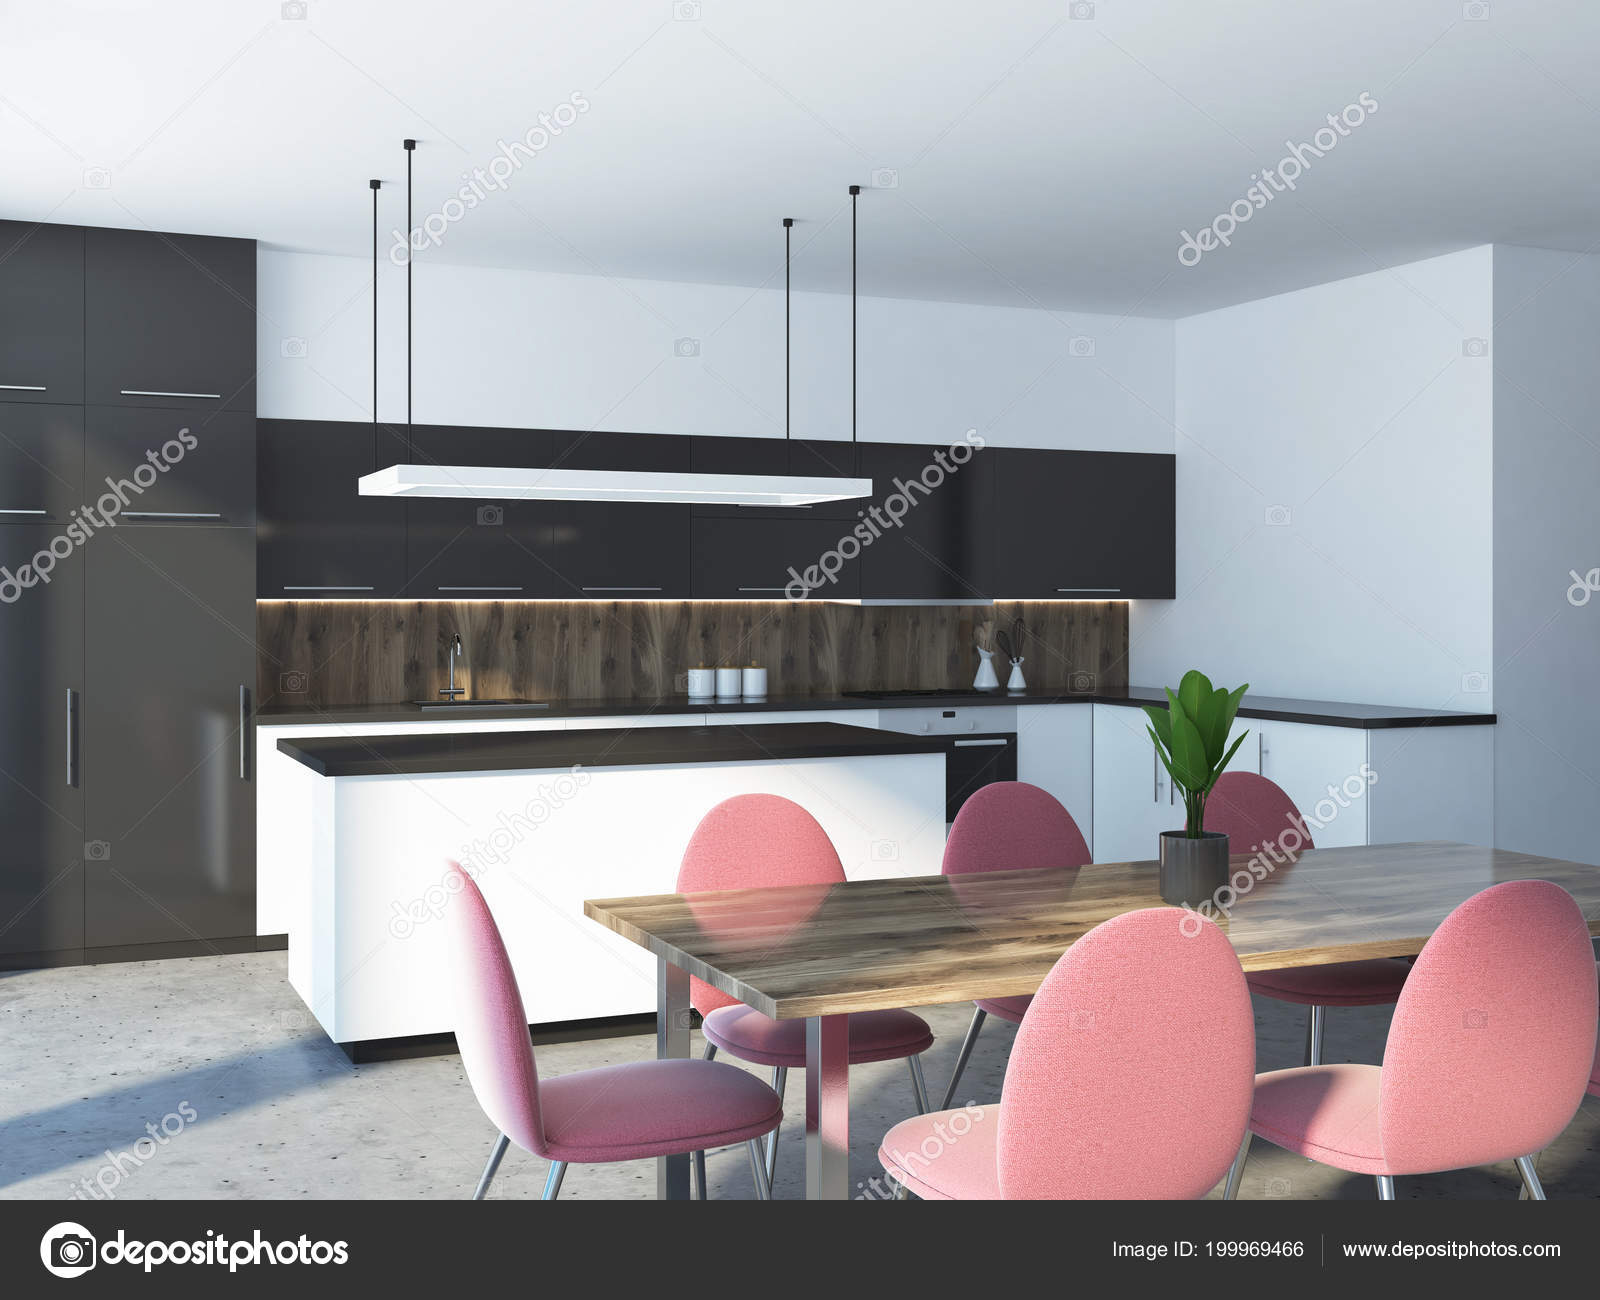 Pink Chairs Standing Dining Room Table Studio Kitchen